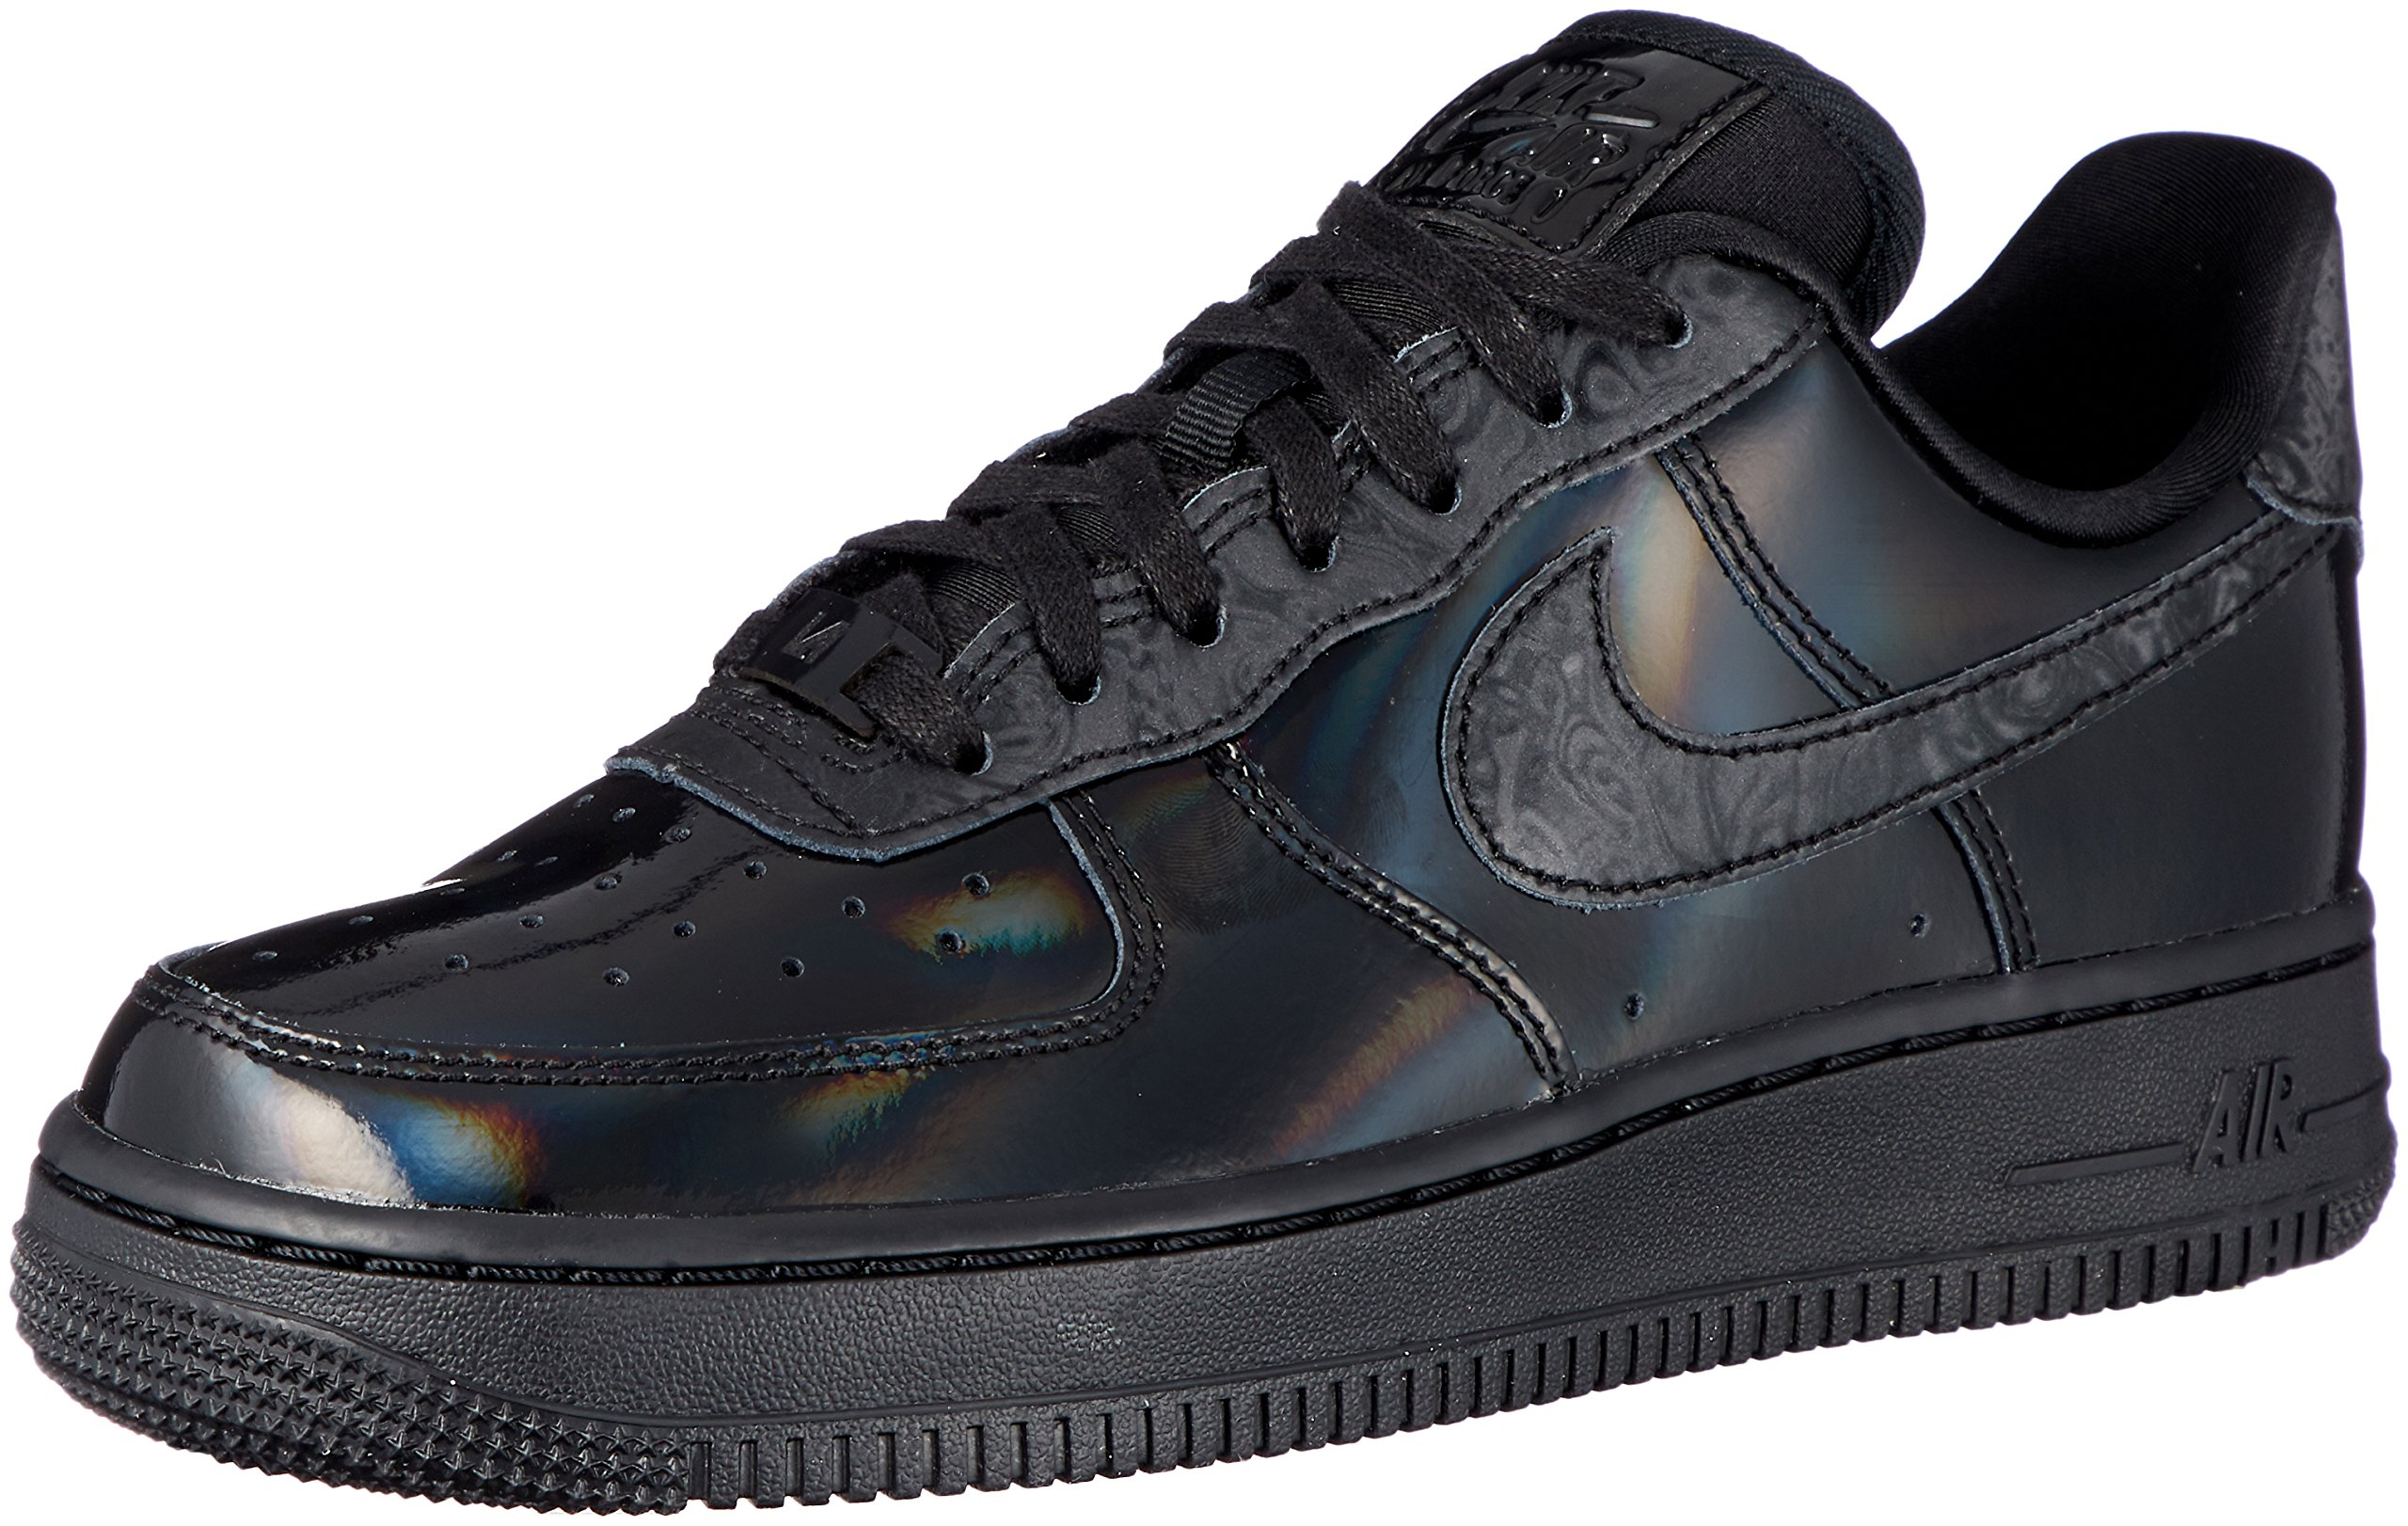 Nike Women's WMNS Air Force 1 07 LX, Black/Black-Summit White, 8 US by Nike